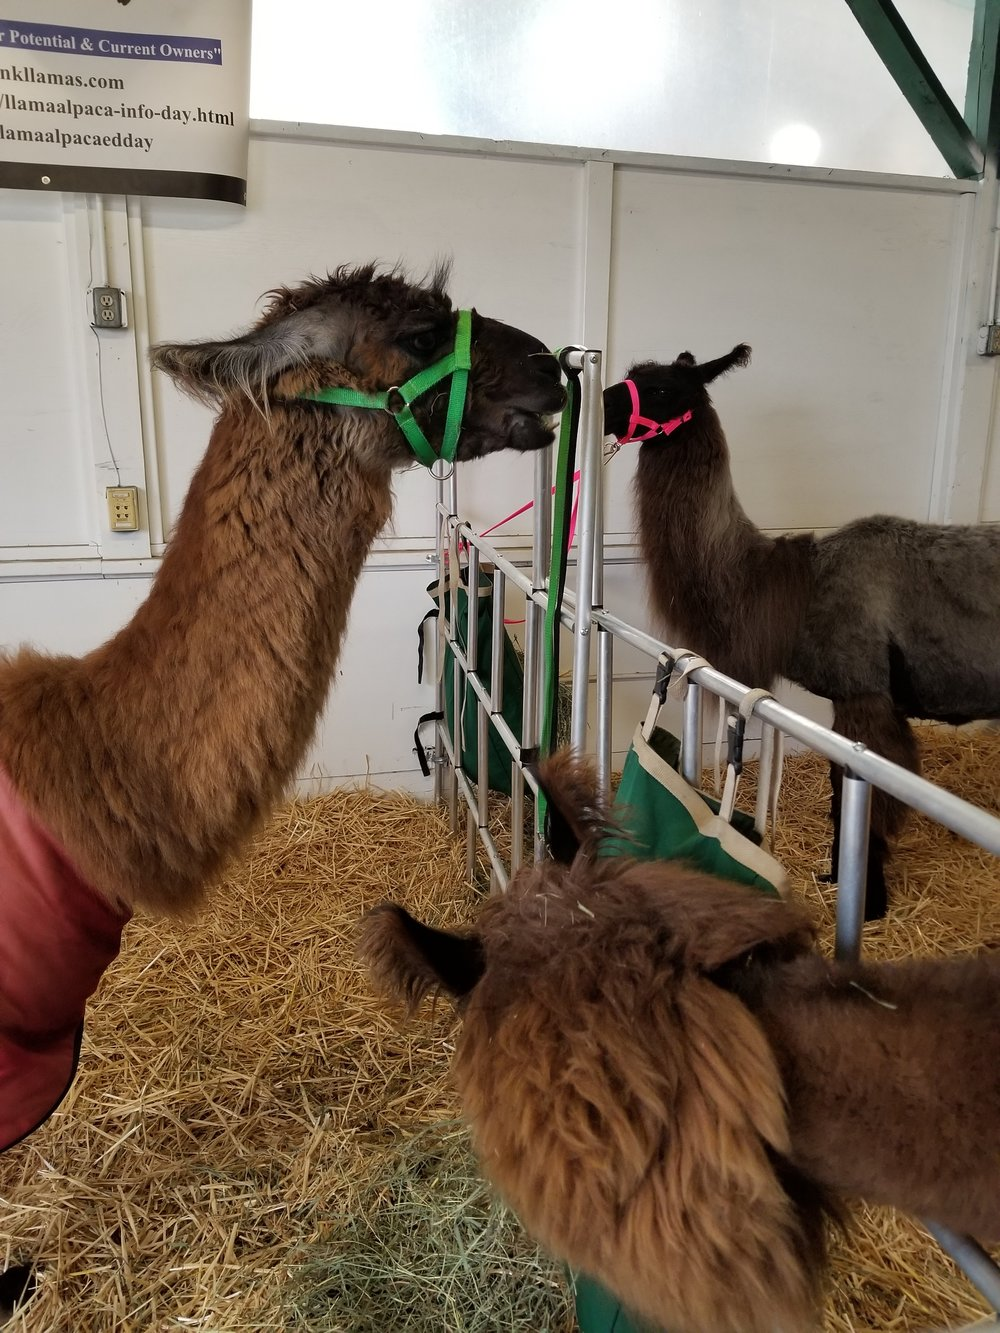 Llamas enjoying their hay